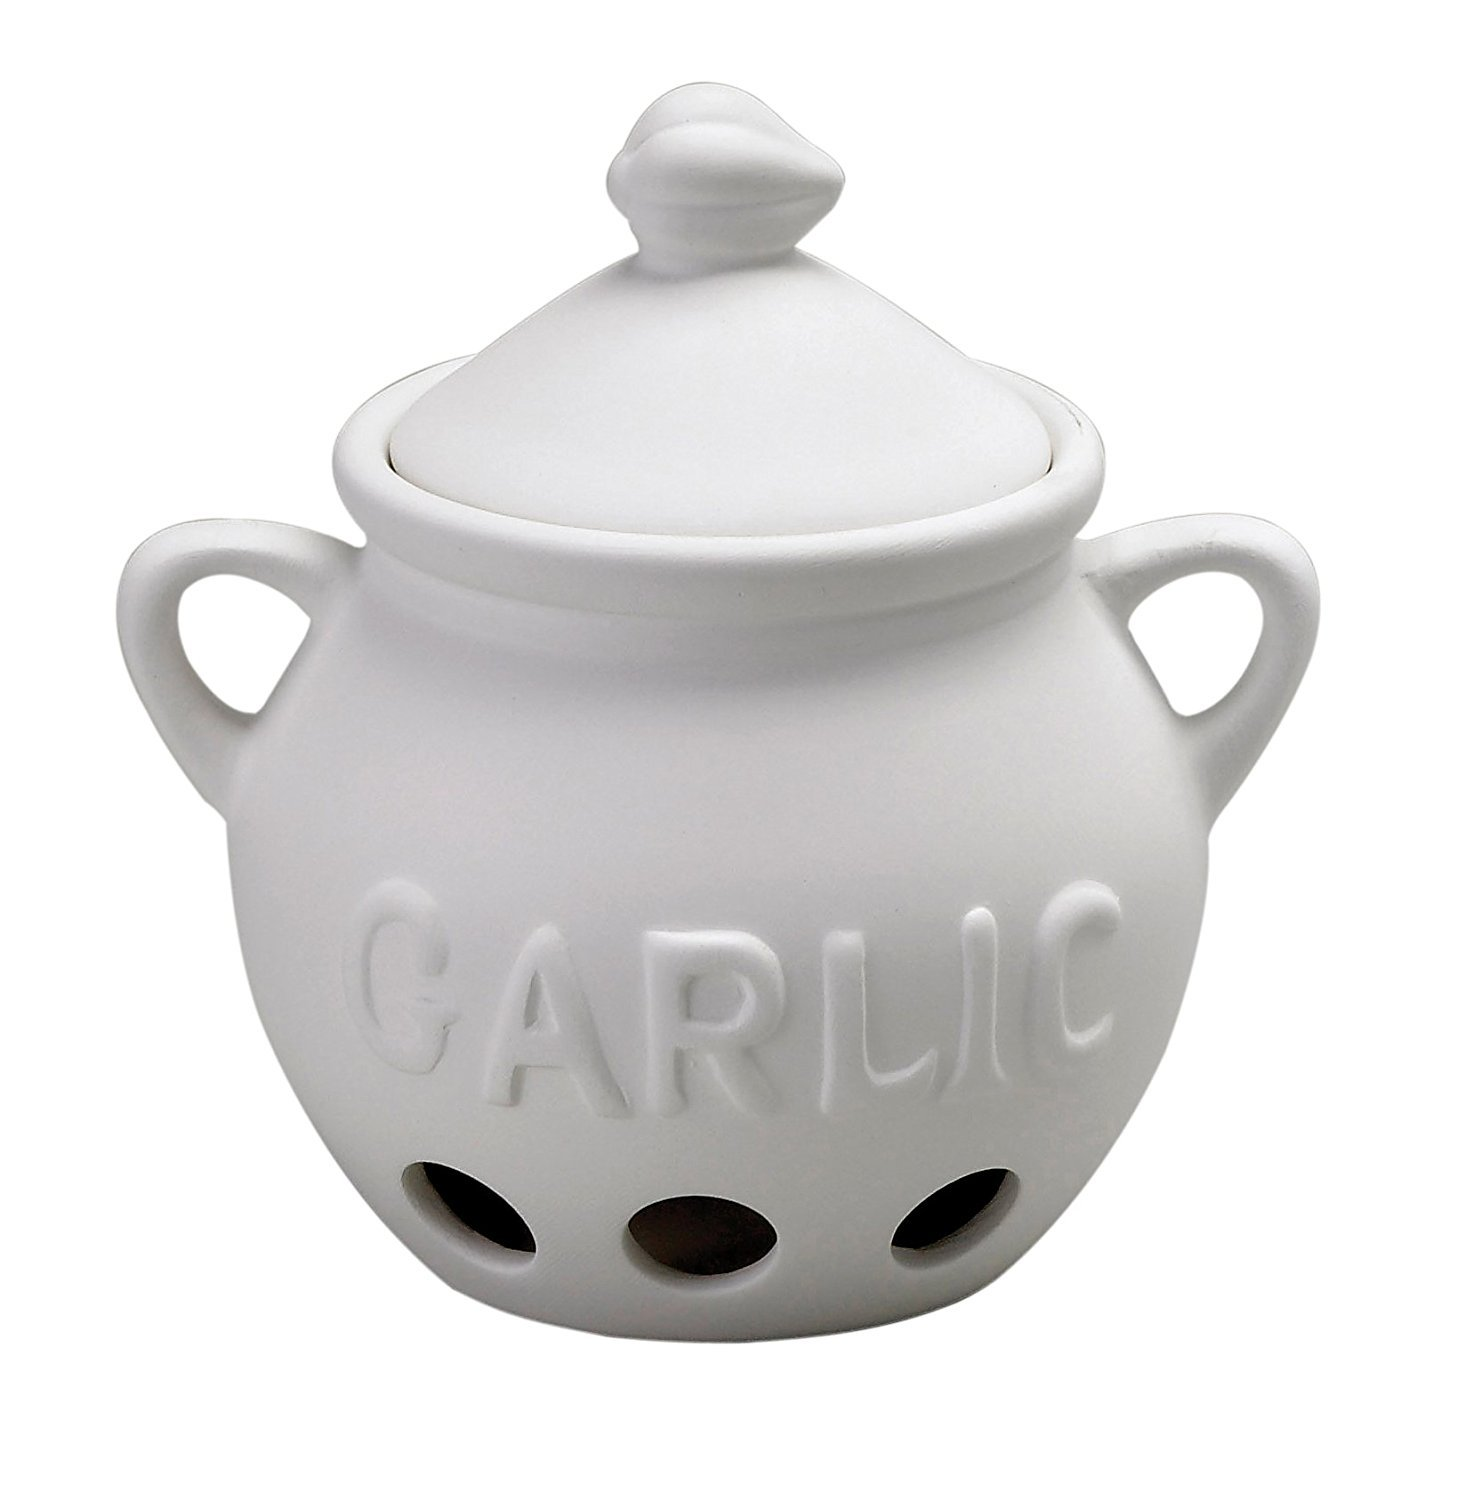 HIC Garlic Clove Keeper, Vented Ceramic Storage Container with Lid, White, 5.25-Inch by 5.5-Inch HIC Harold Import Co. 43606